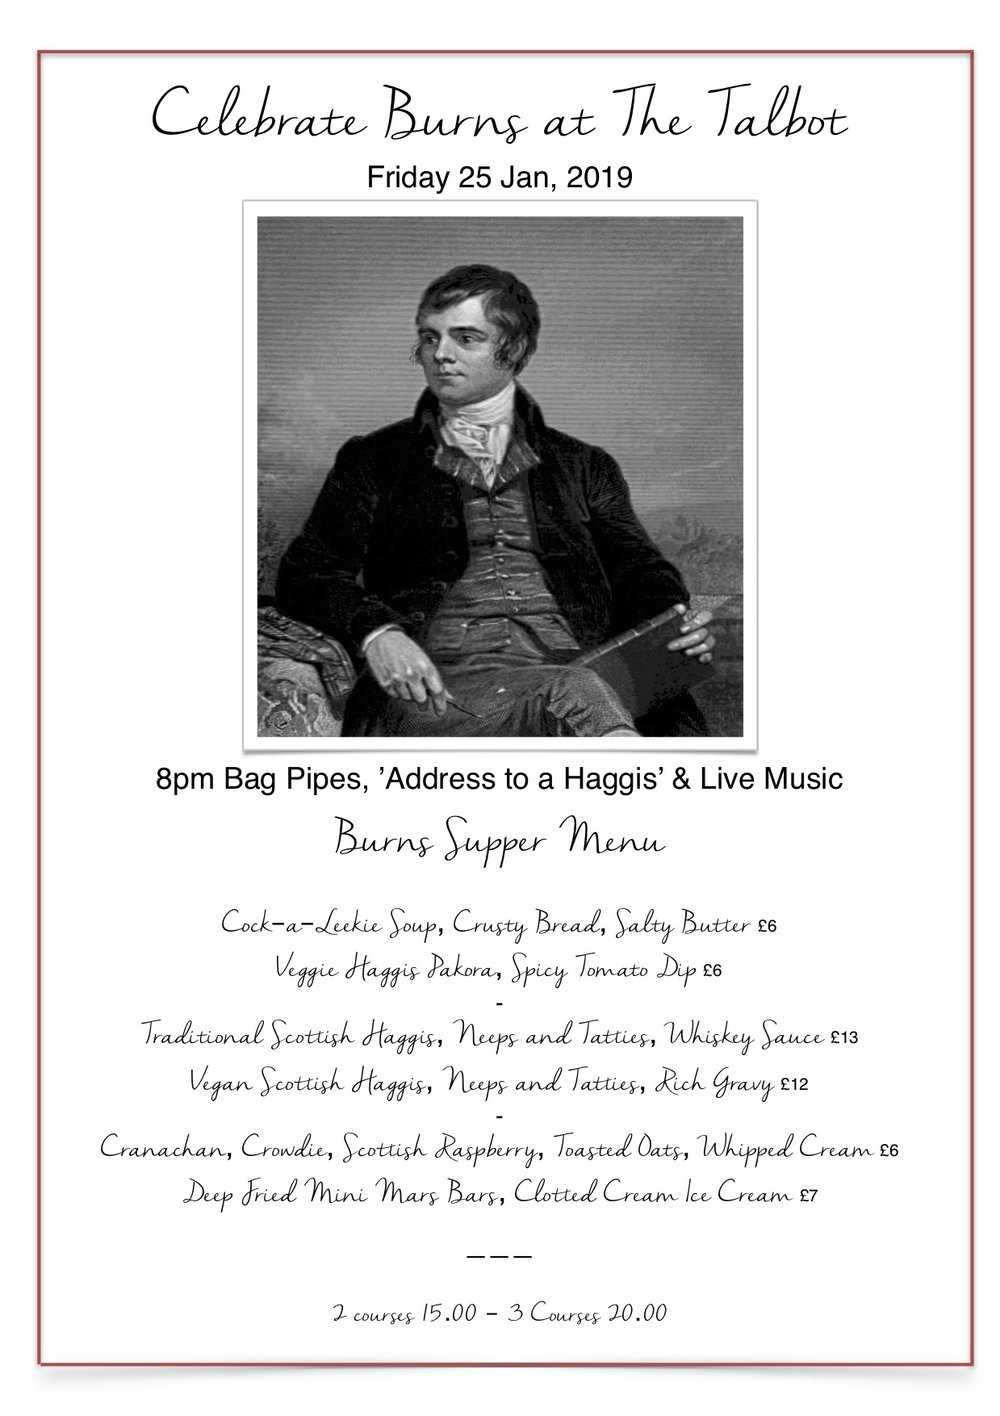 Burns night menu 2019